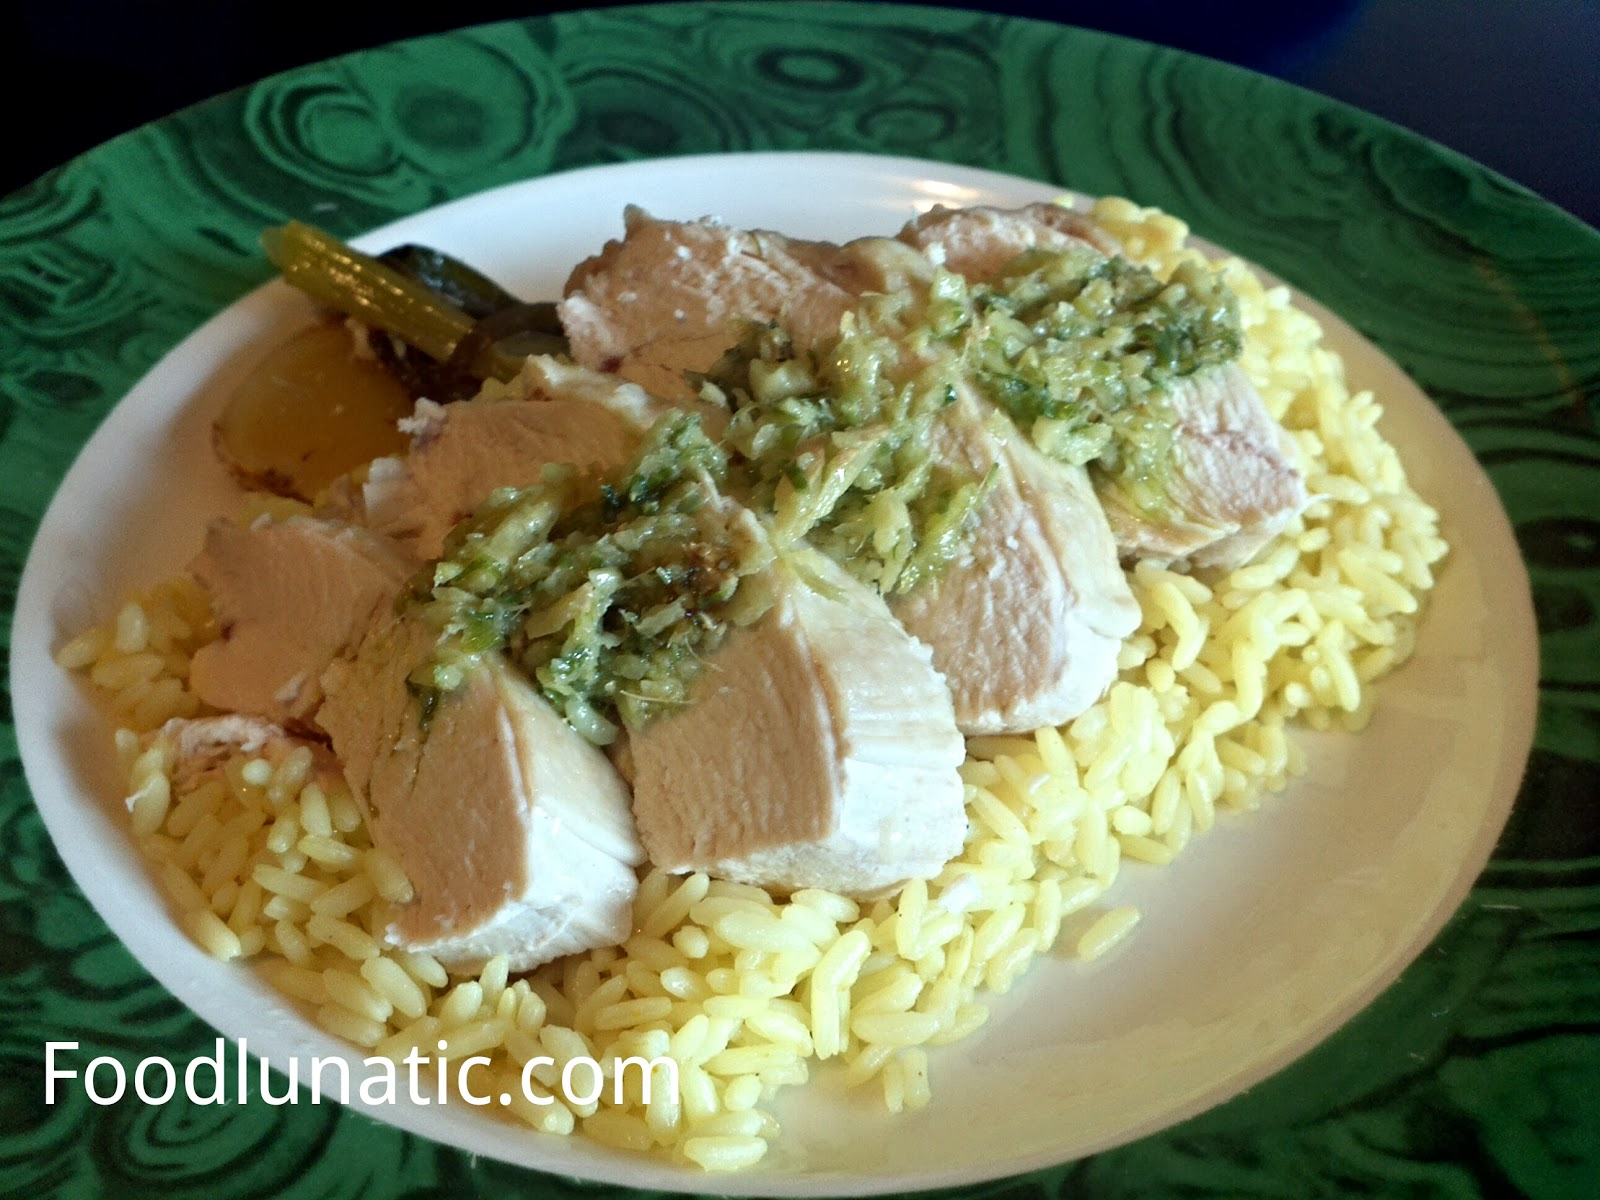 Food Lunatic: Ginger and Scallions Steamed Chicken with Golden Rice